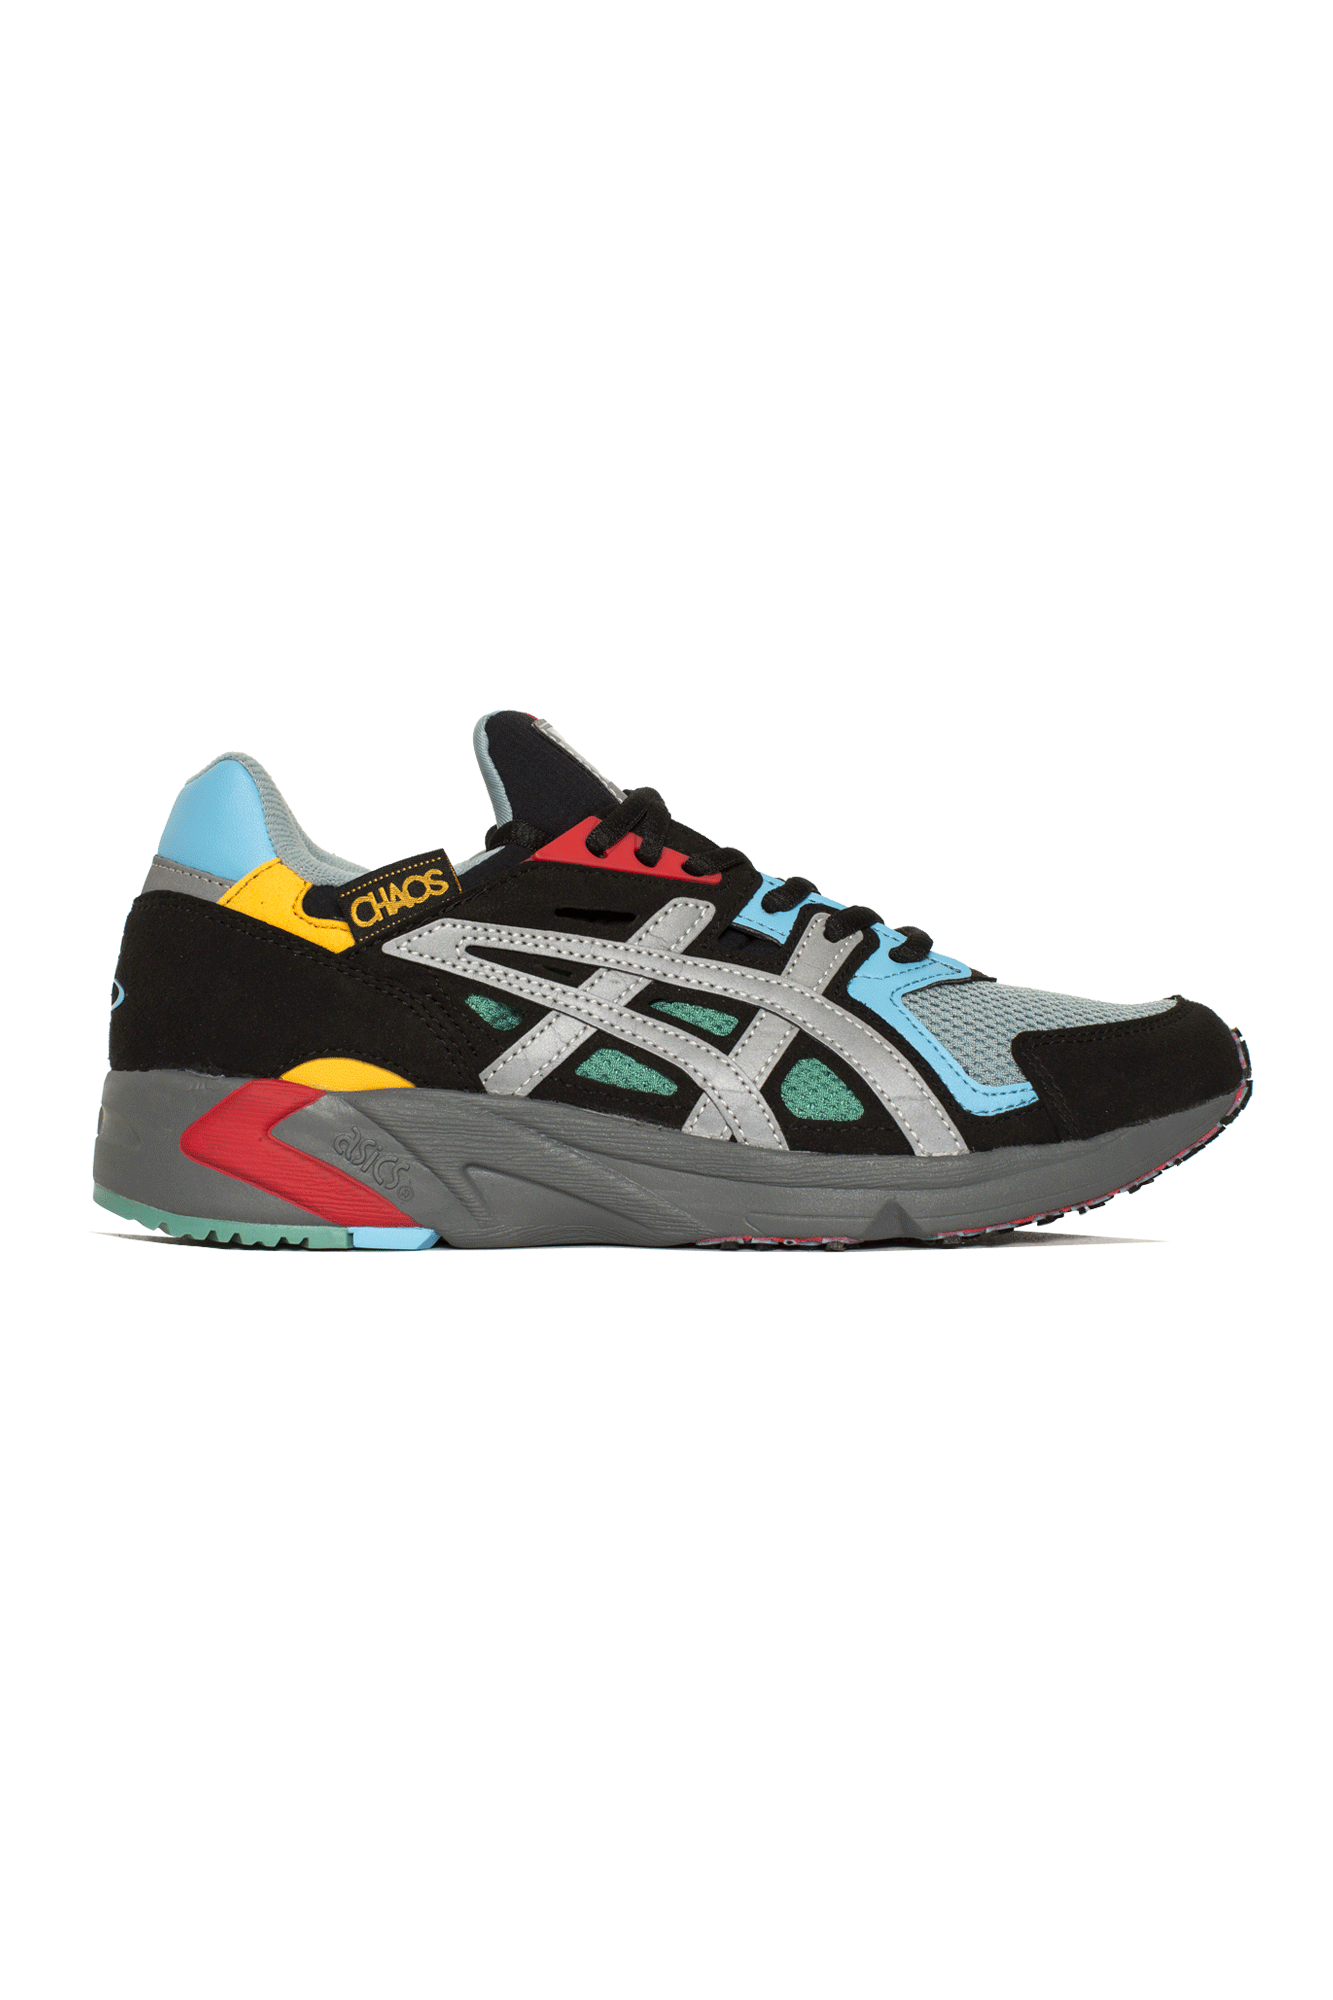 Asics Sneakers Gel-Ds Trainer OG x Vivienne Westwood Nero [option2] - One Block Down